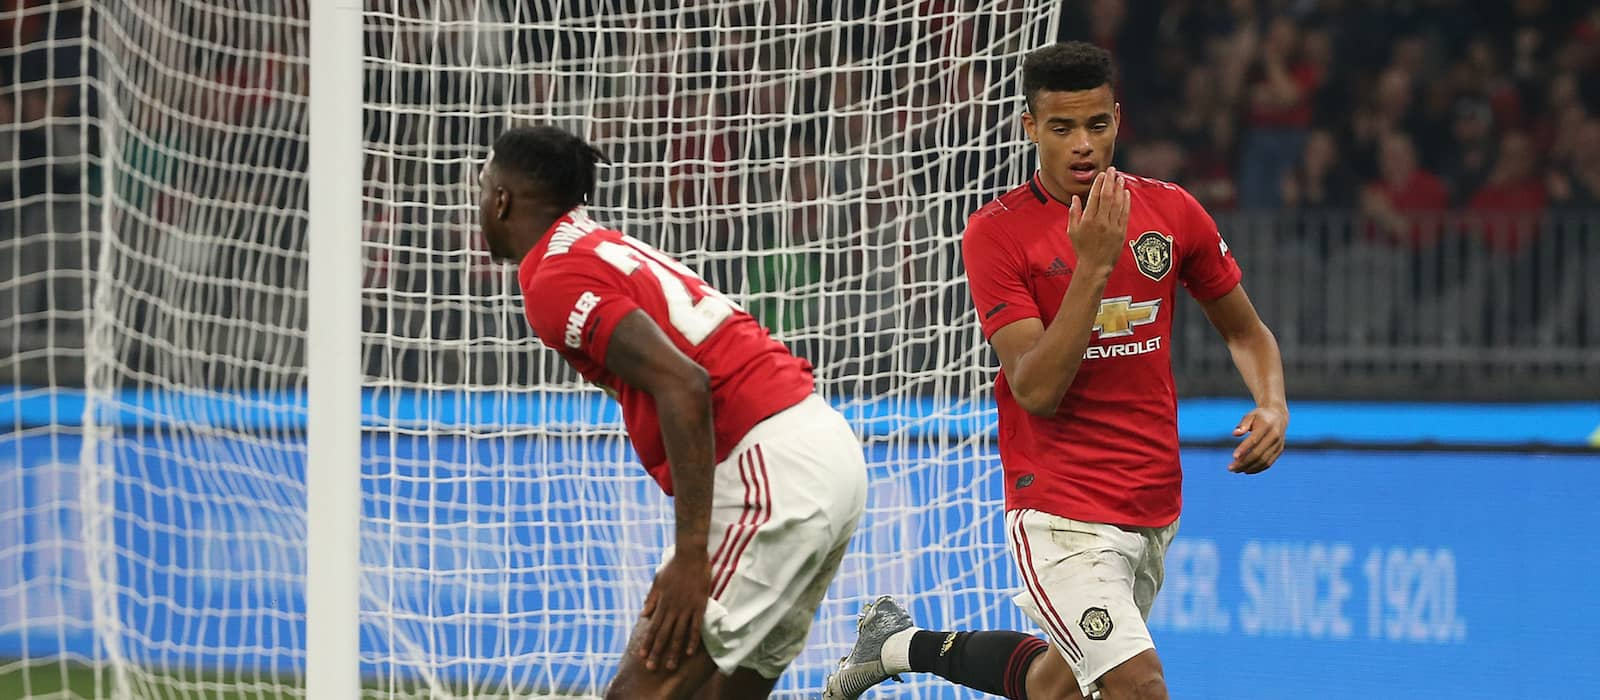 Manchester United taking precautions to protect young starlet Mason Greenwood – report